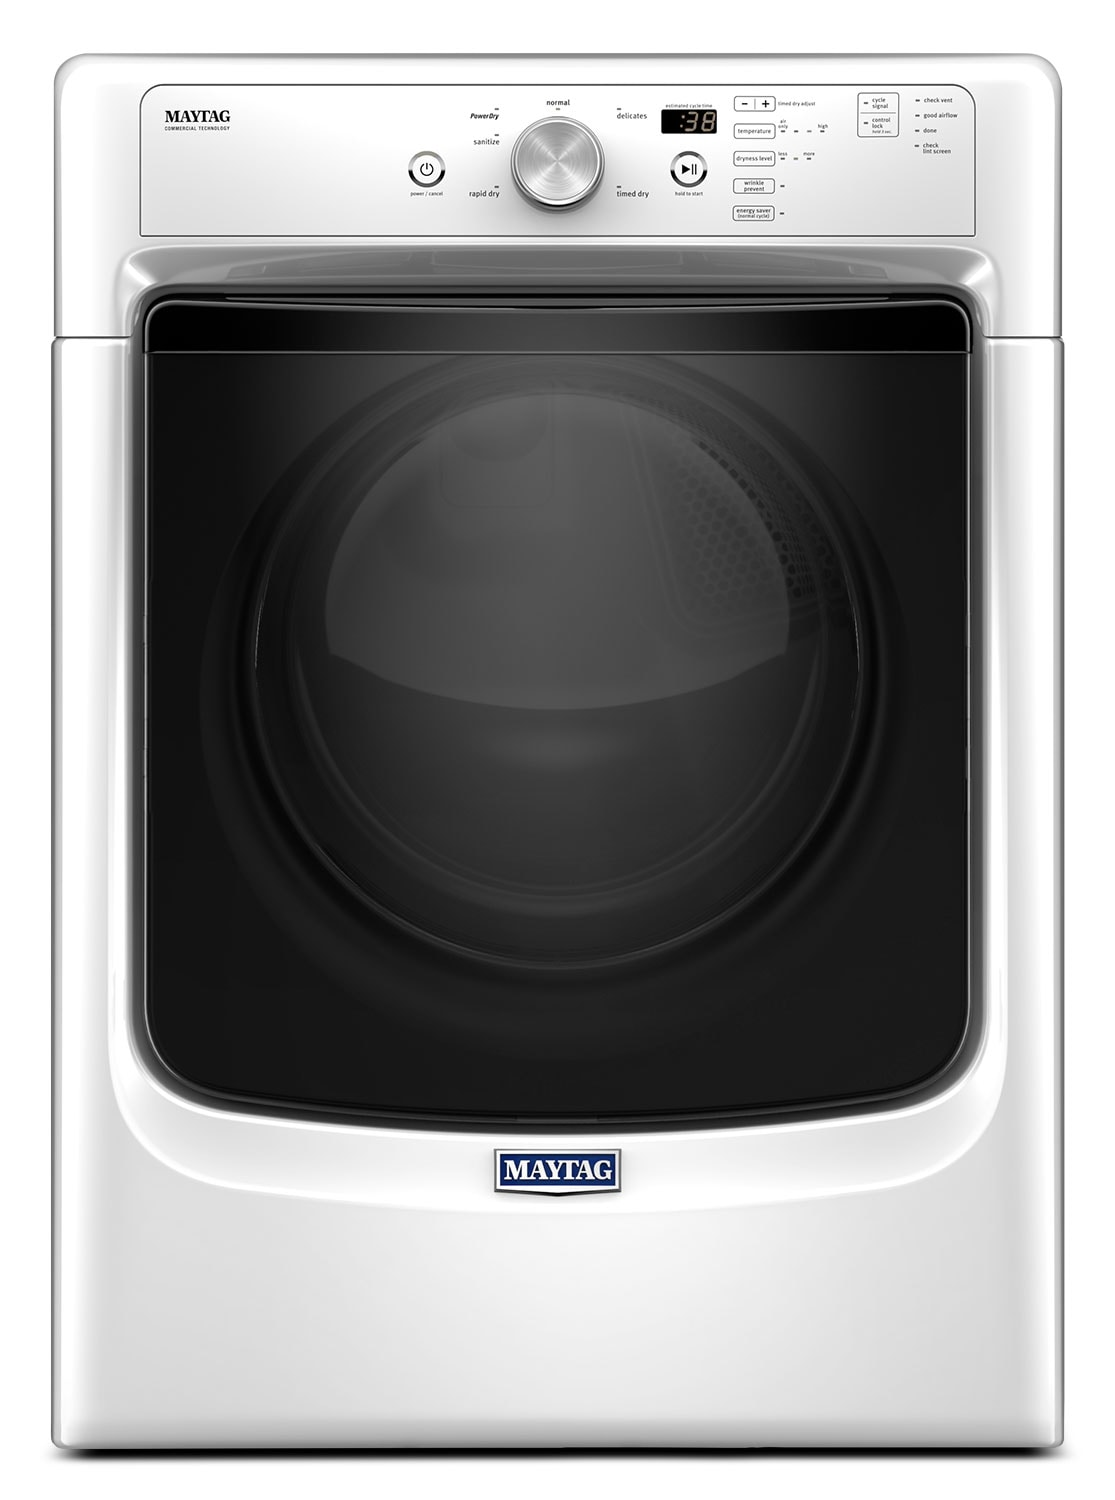 Washers and Dryers - Maytag 7.4 Cu. Ft. Electric Dryer – YMED3500FW